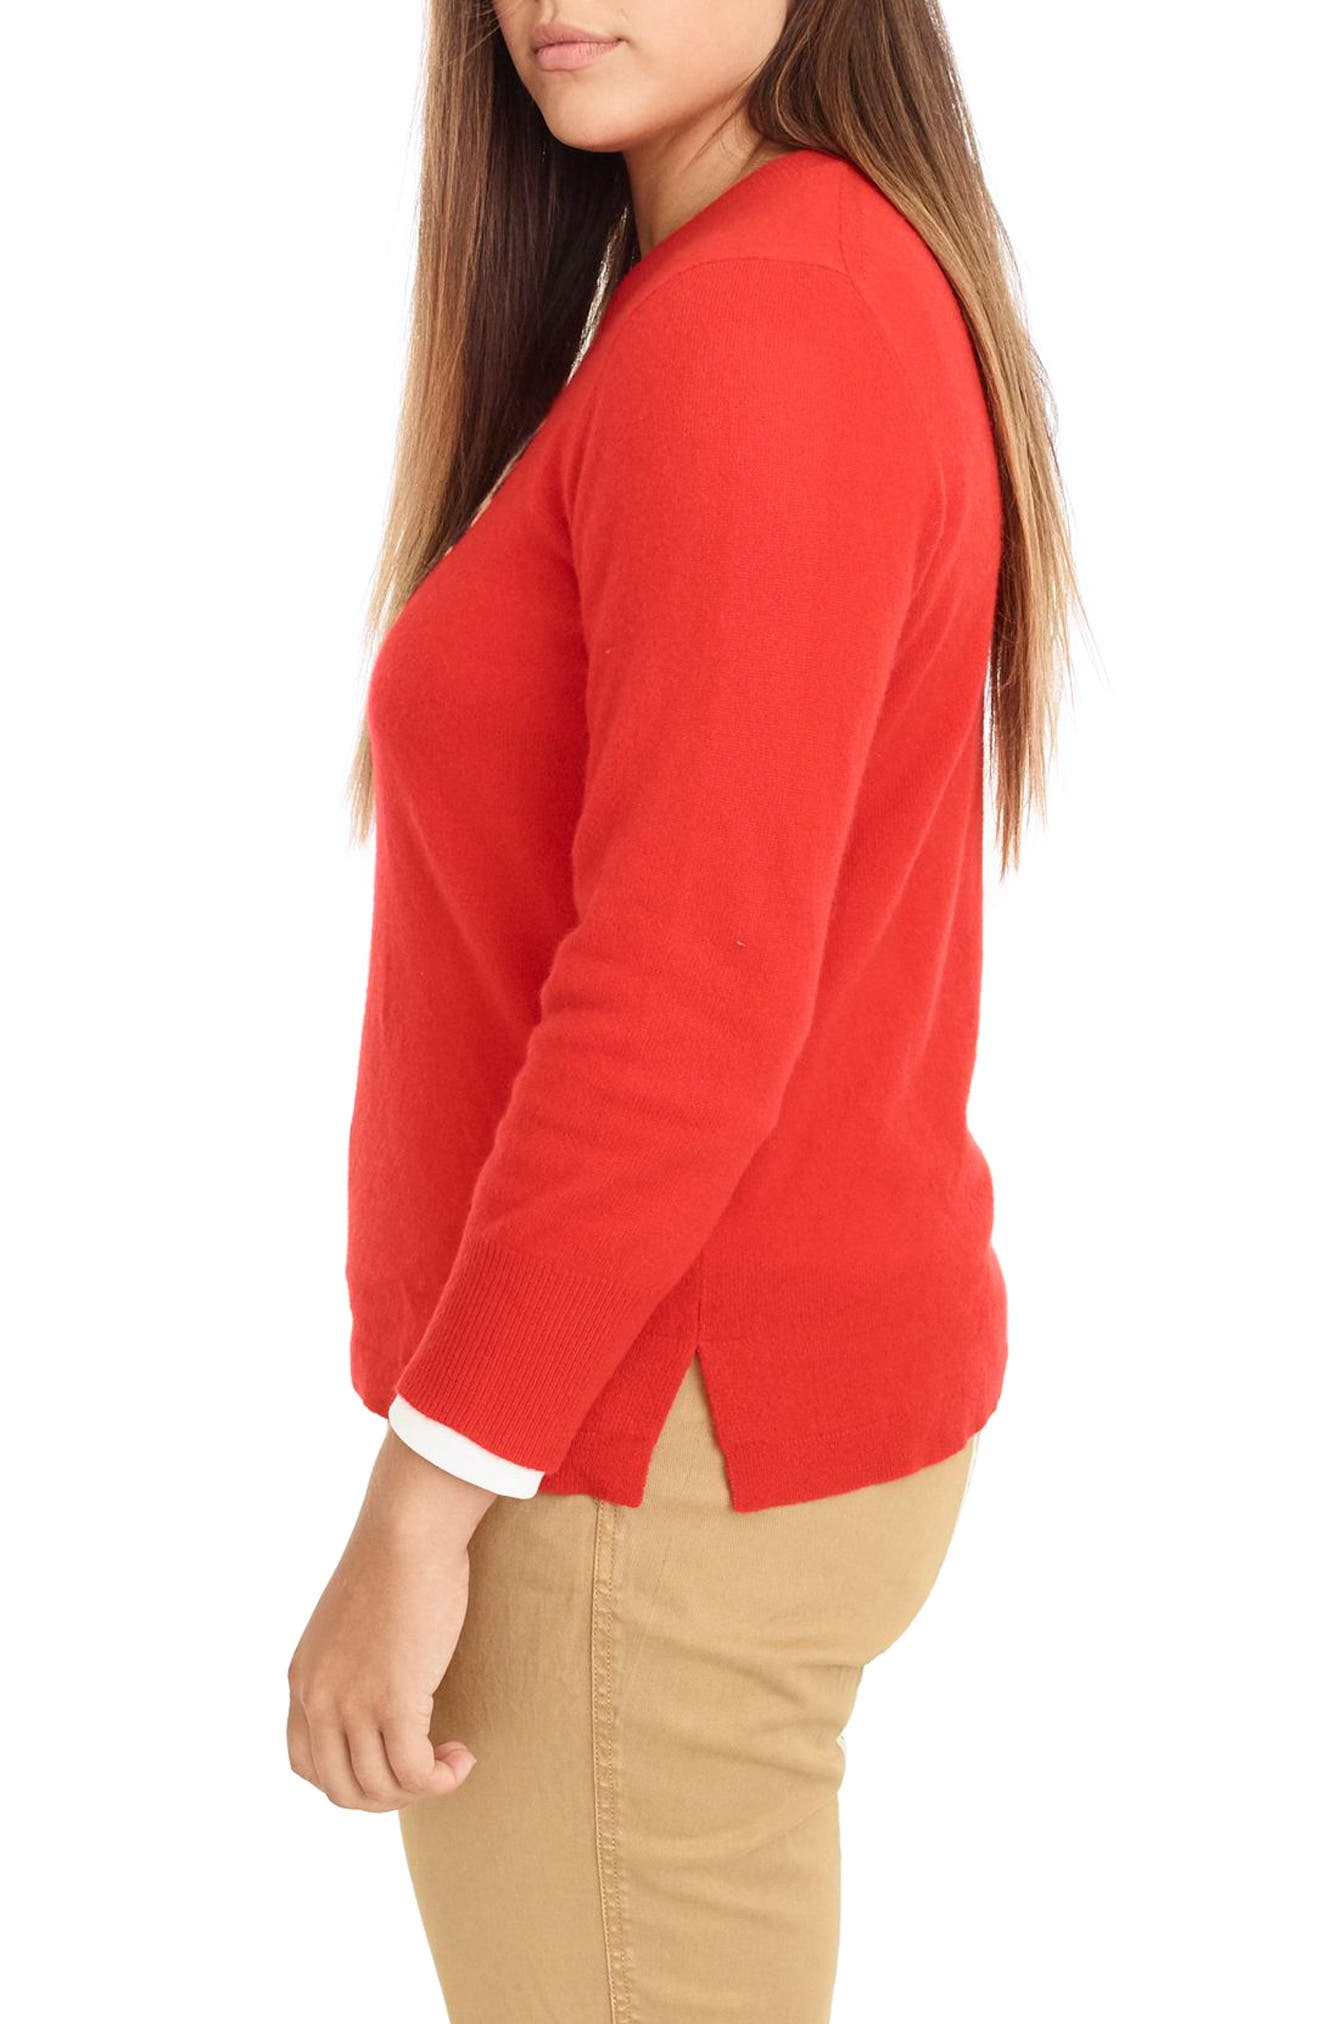 Leopard Heart Everyday Cashmere Sweater,                             Alternate thumbnail 8, color,                             600